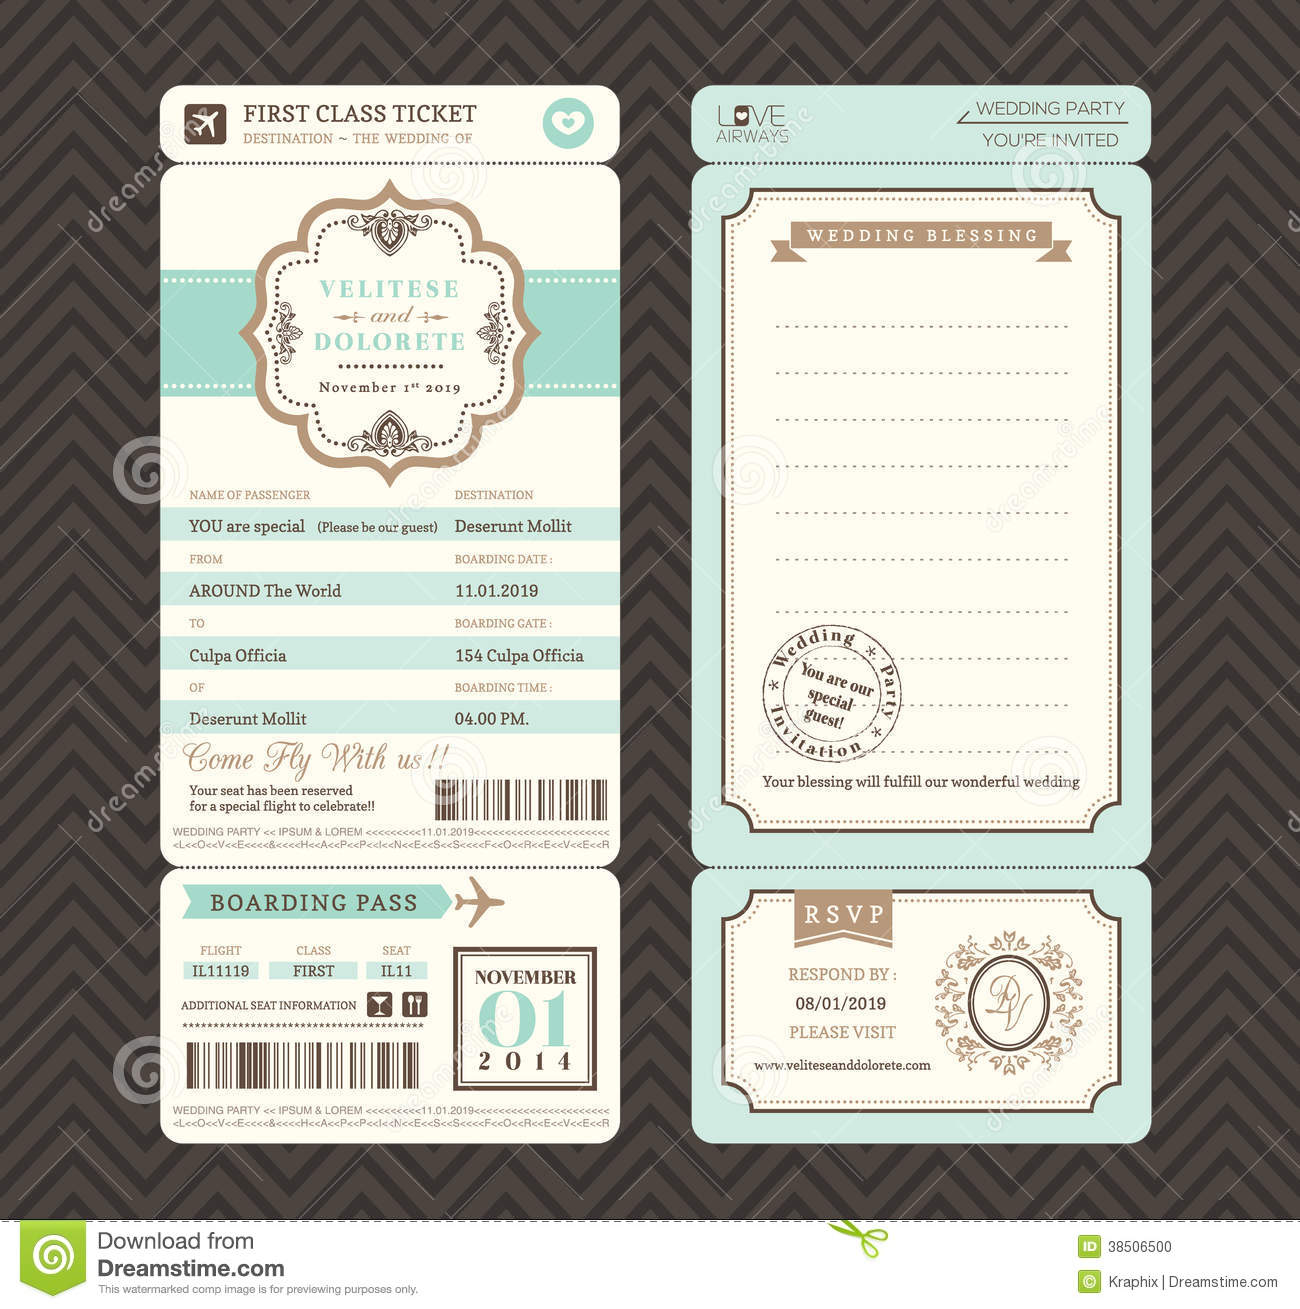 Airplane Invitation Template was perfect invitation layout